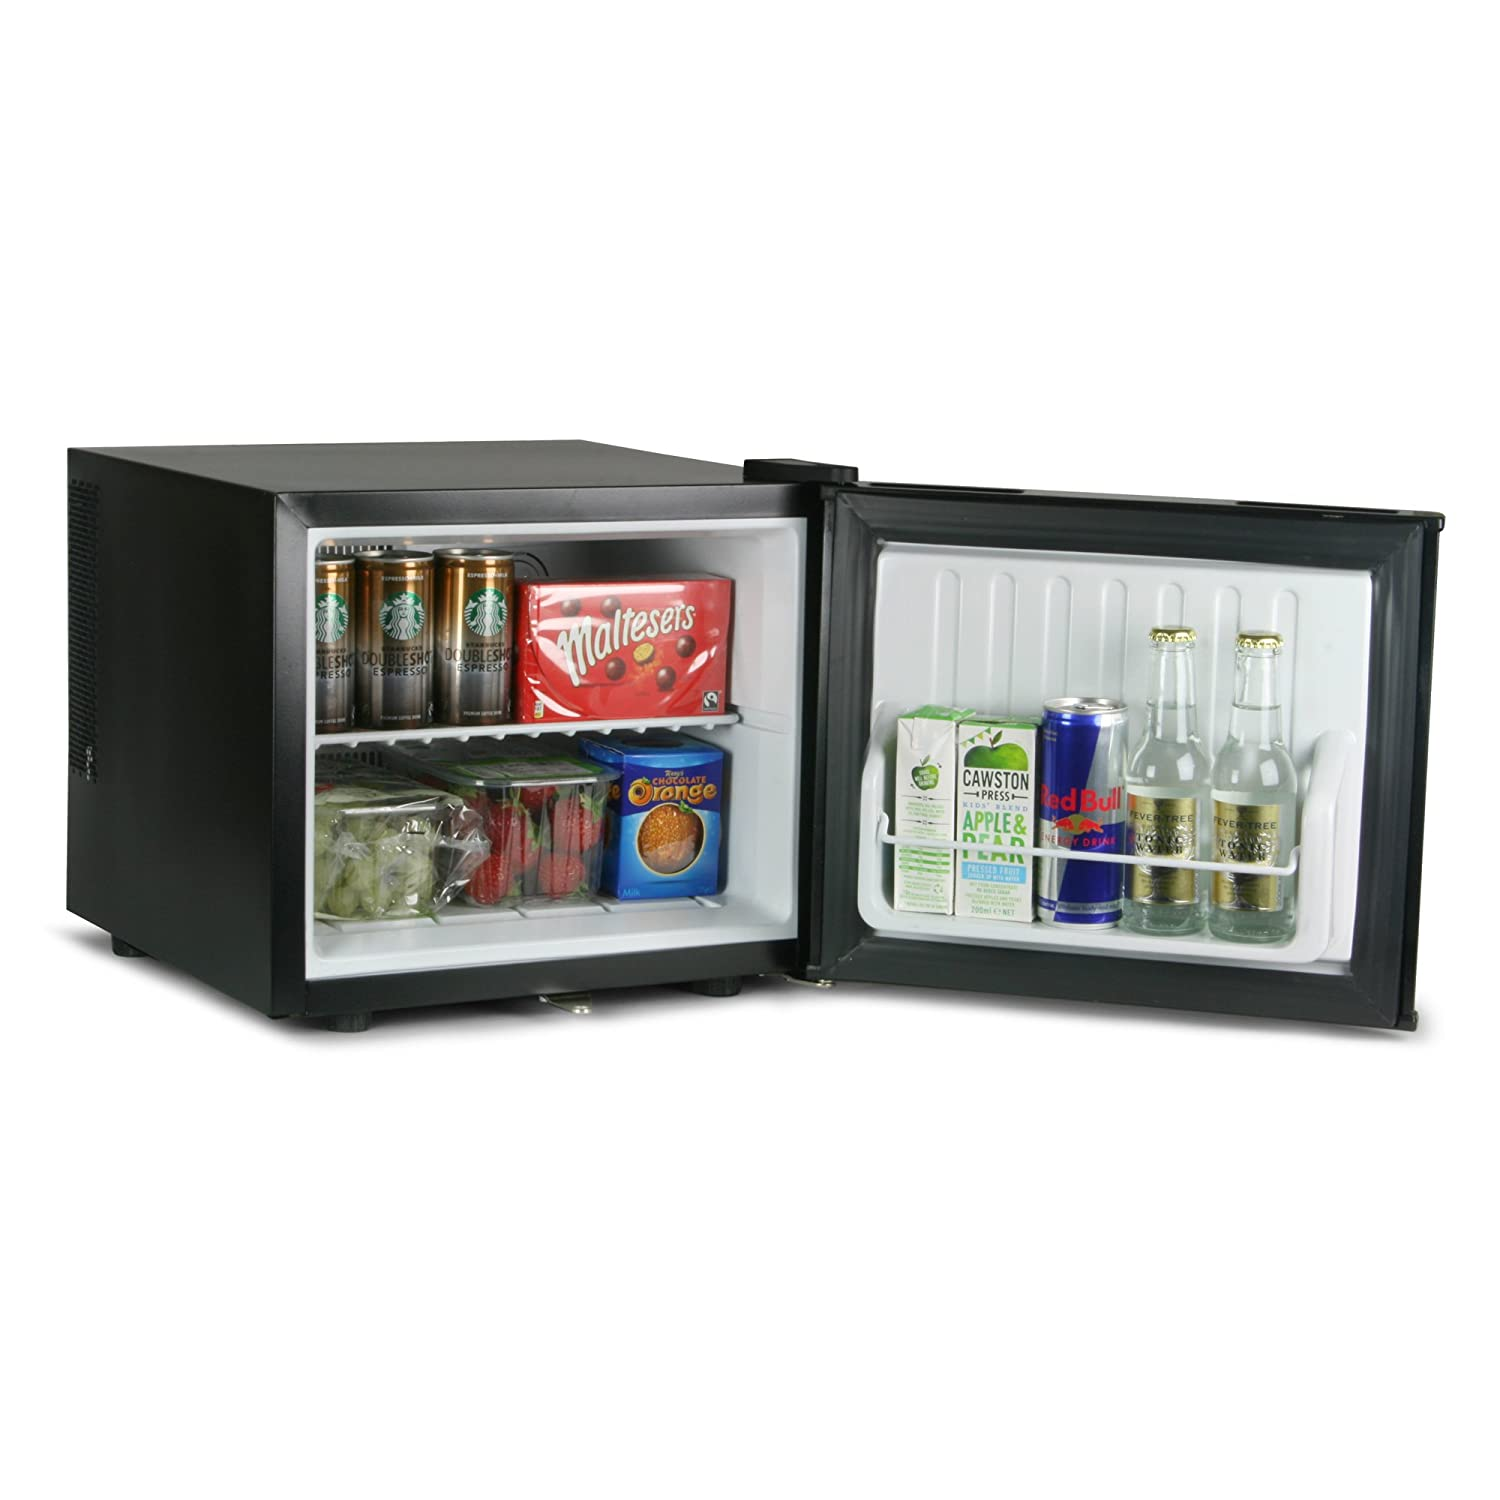 Drinkstuff 17ltr ChillQuiet Mini Fridge - Black [Energy Class B] bar@drinkstuff